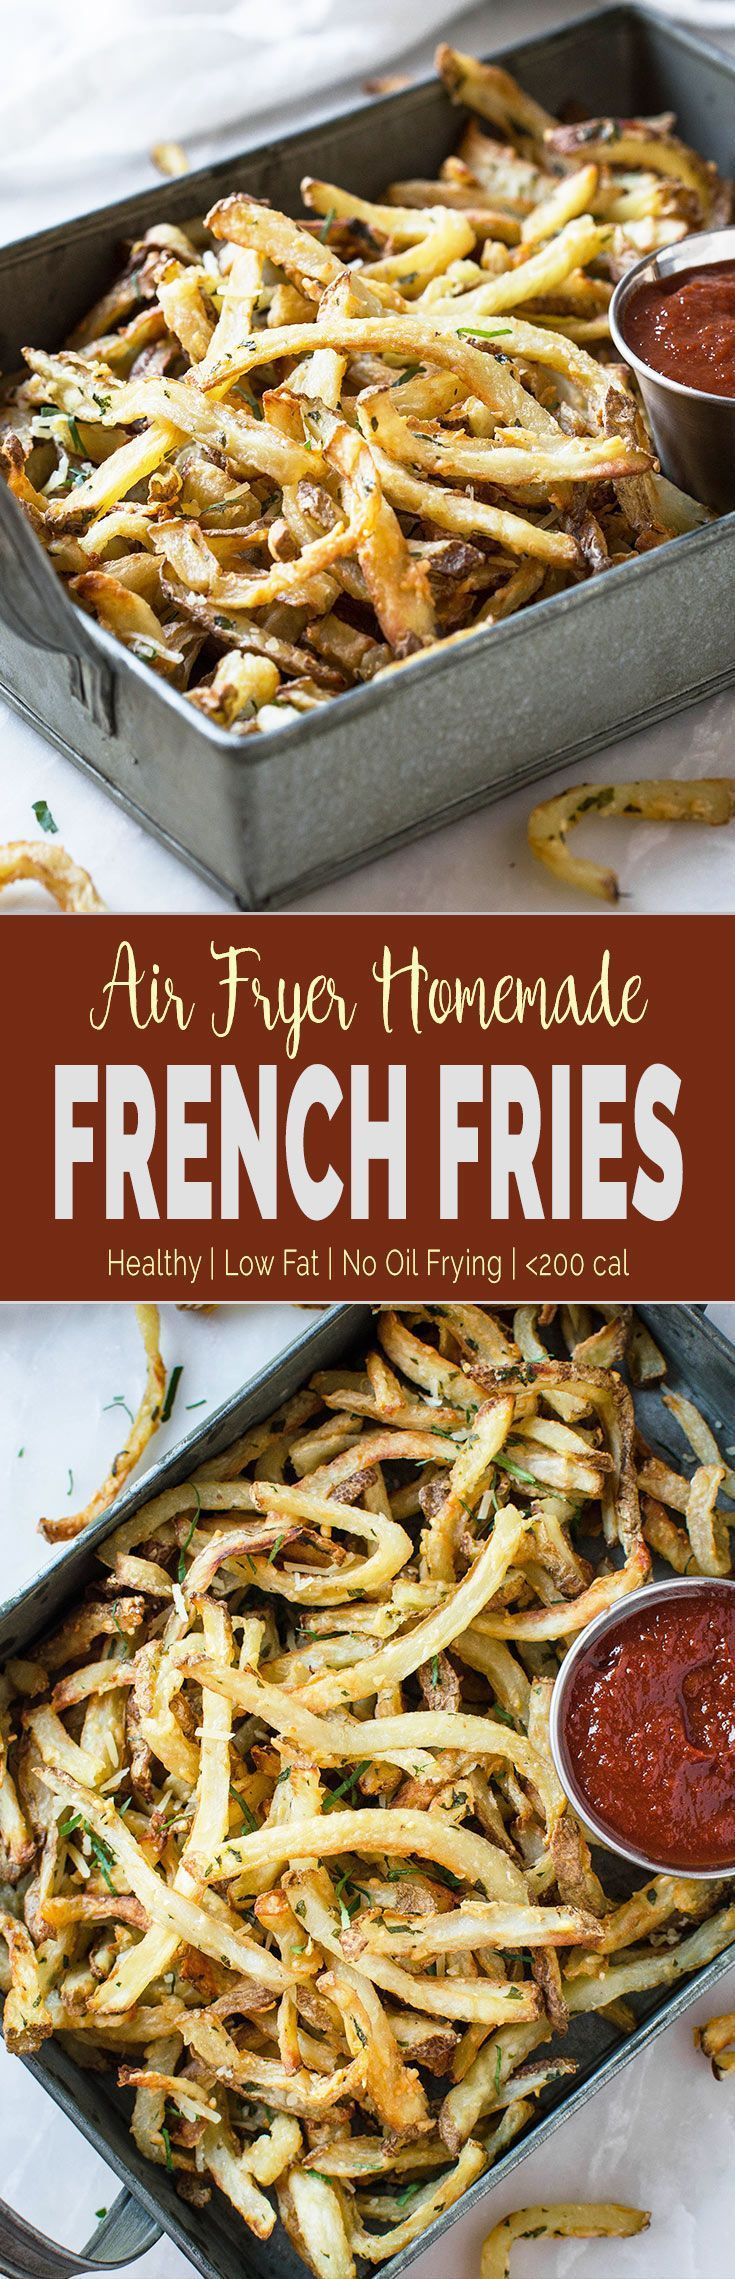 Low Fat Air Fryer French Fries -Healthy homemade French Fries without the need to deep fry in oil. You can make them anytime you crave for french fries. | #airfryer #frenchfries #lowfat#healthyfries  via @watchwhatueat